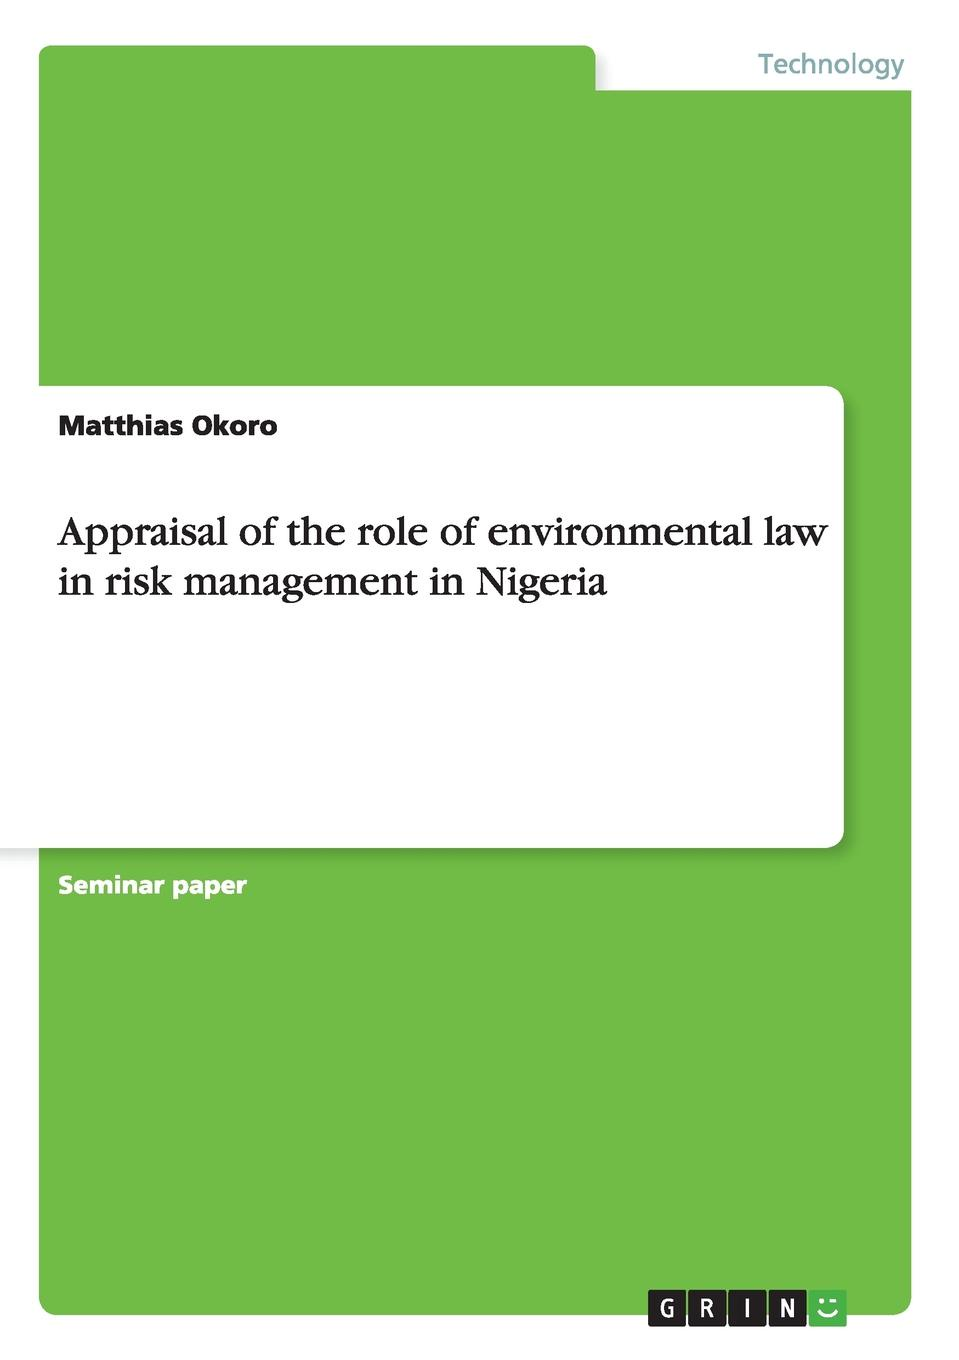 Matthias Okoro Appraisal of the role of environmental law in risk management in Nigeria kapustka lawrence a environmental risk assessment and management from a landscape perspective